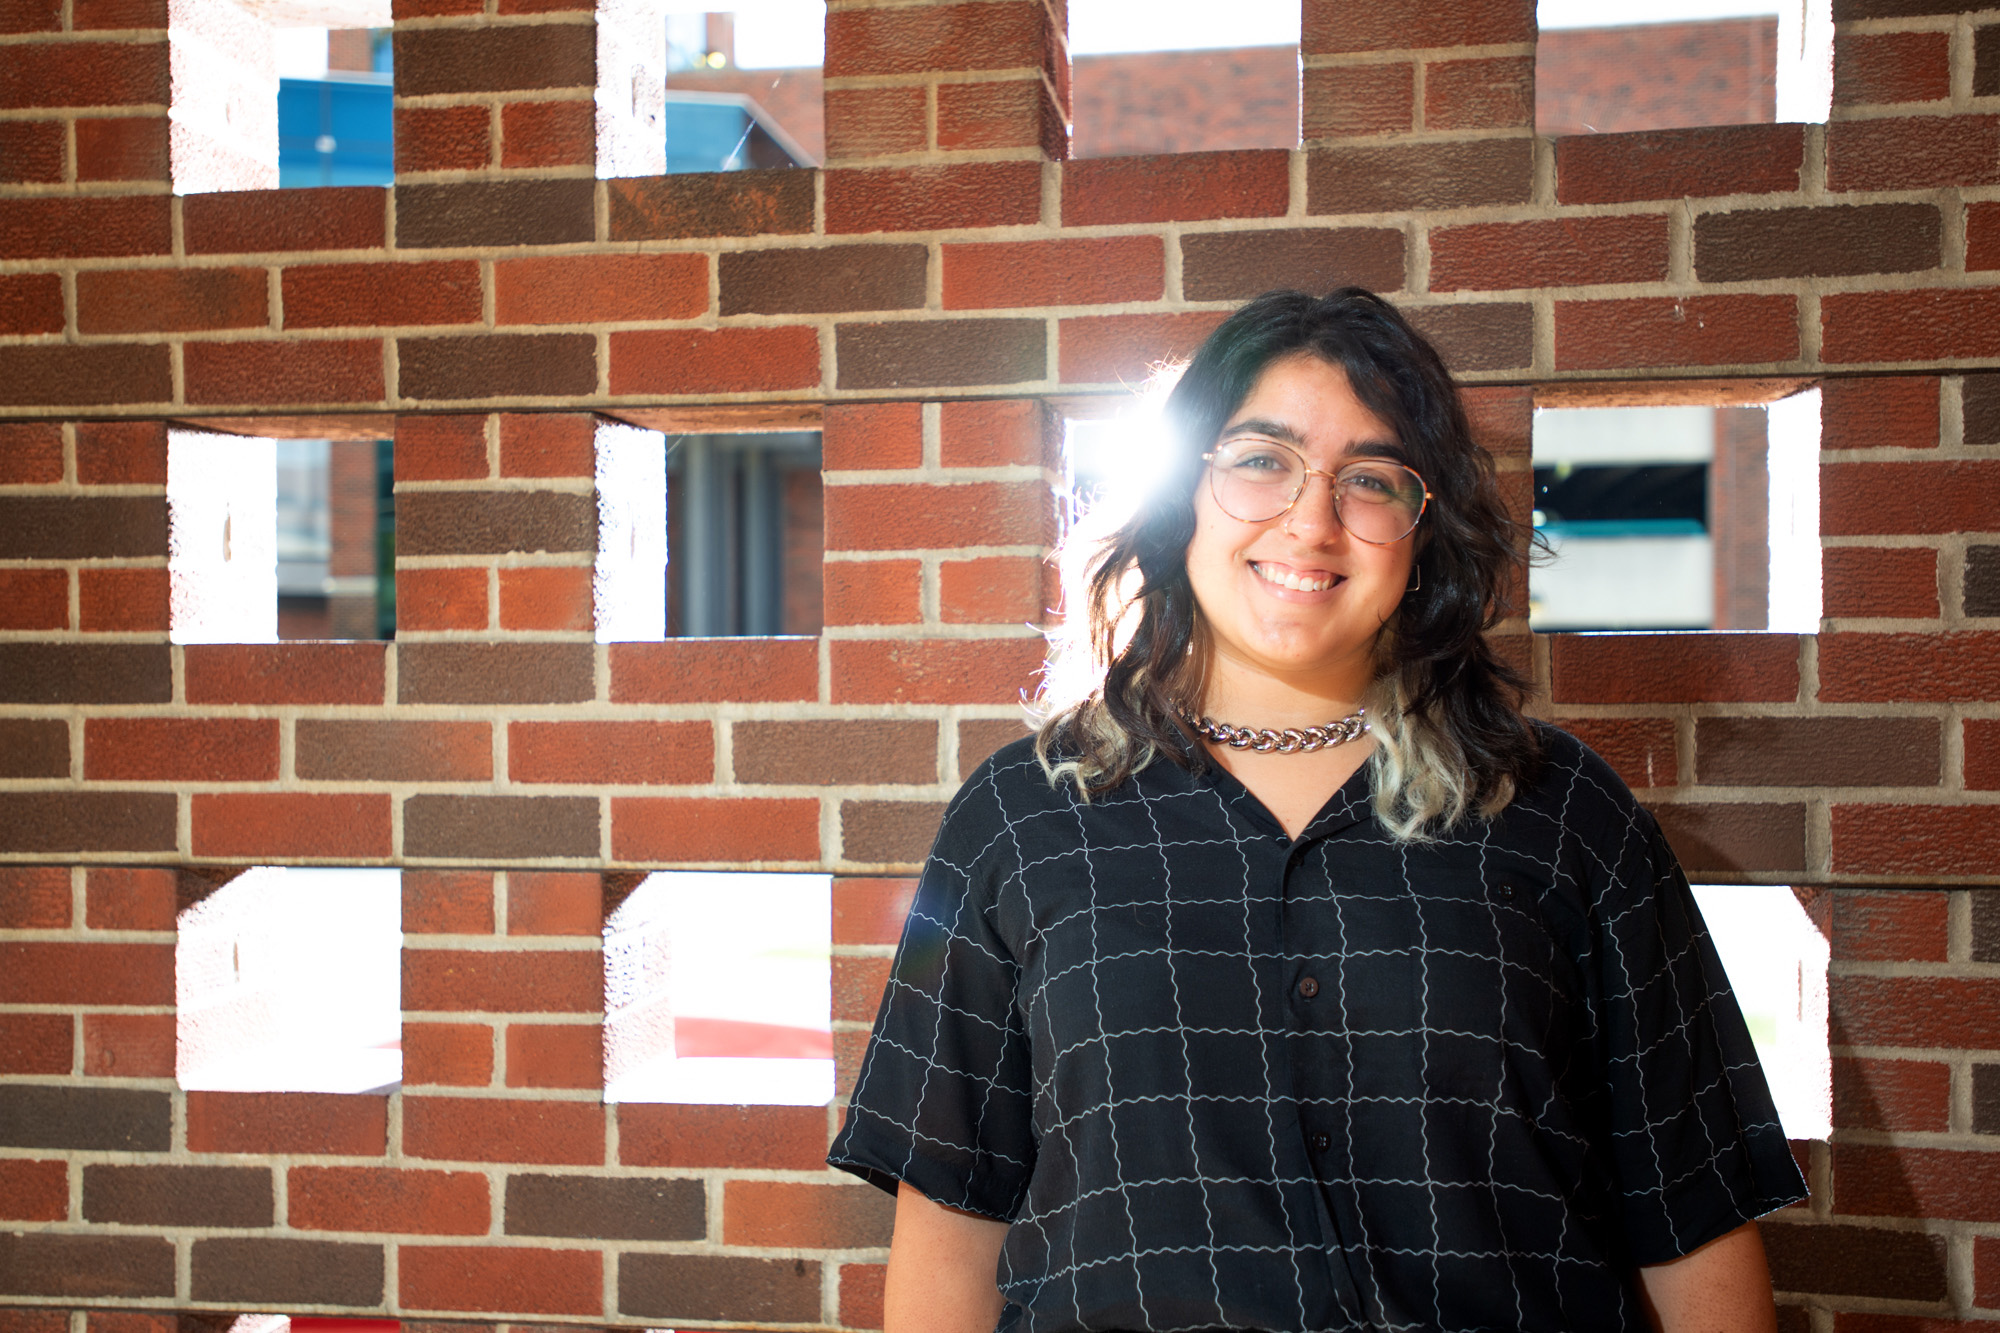 University of Iowa graduate student Bianca Robles-Munoz standing near a brick wall with sunlight coming through openings